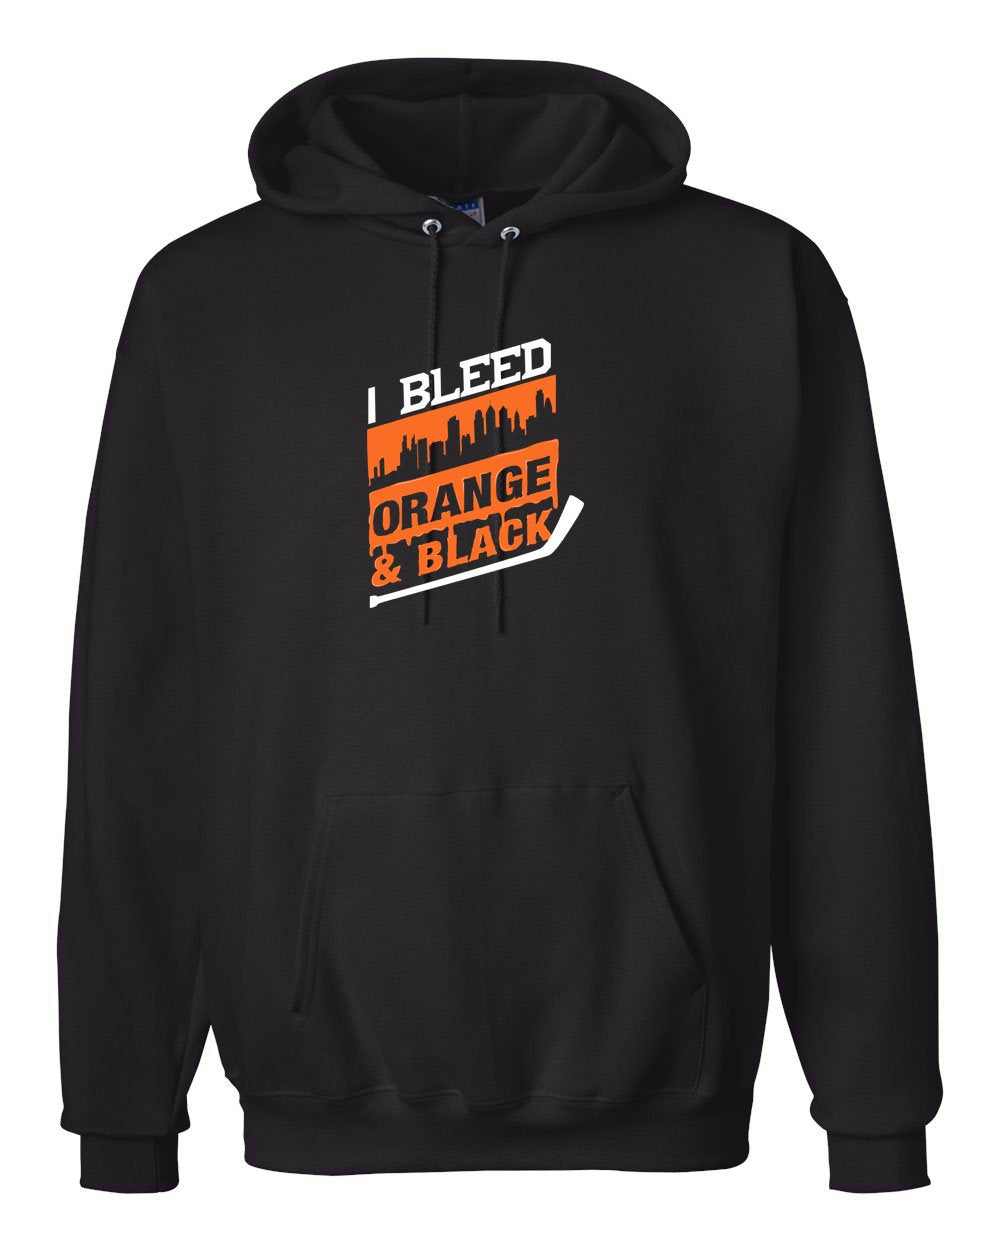 I Bleed Orange and Black Hoodie